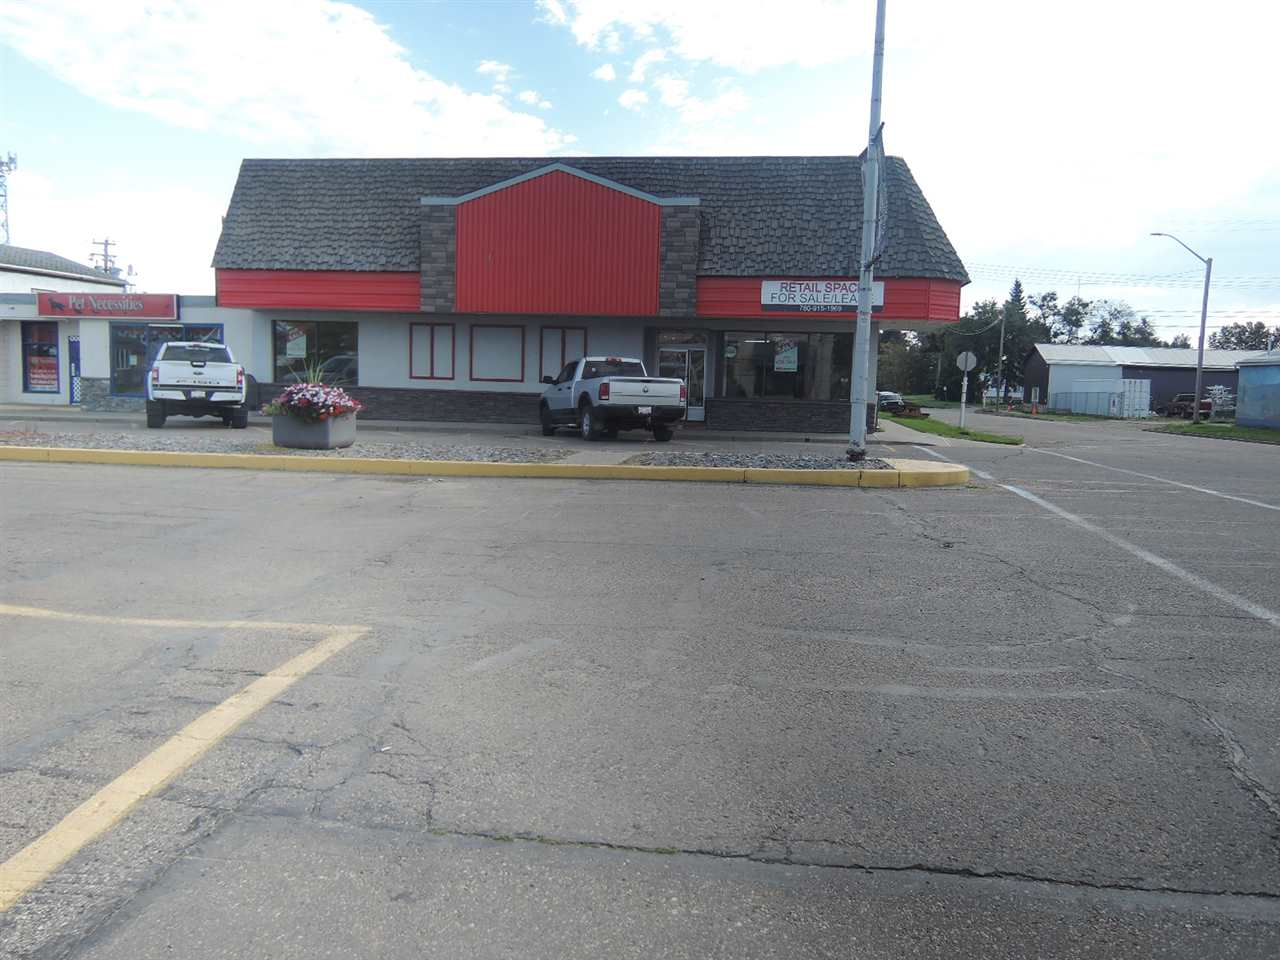 5300 sf retail building fronting Hankin Street in Thorsby. This property is the former location for the local Home Hardware store and is neighboring additional office and retail businesses serving the community and surrounding areas. Additional storage building of approximately 1200 sf can remain or be removed by the seller.